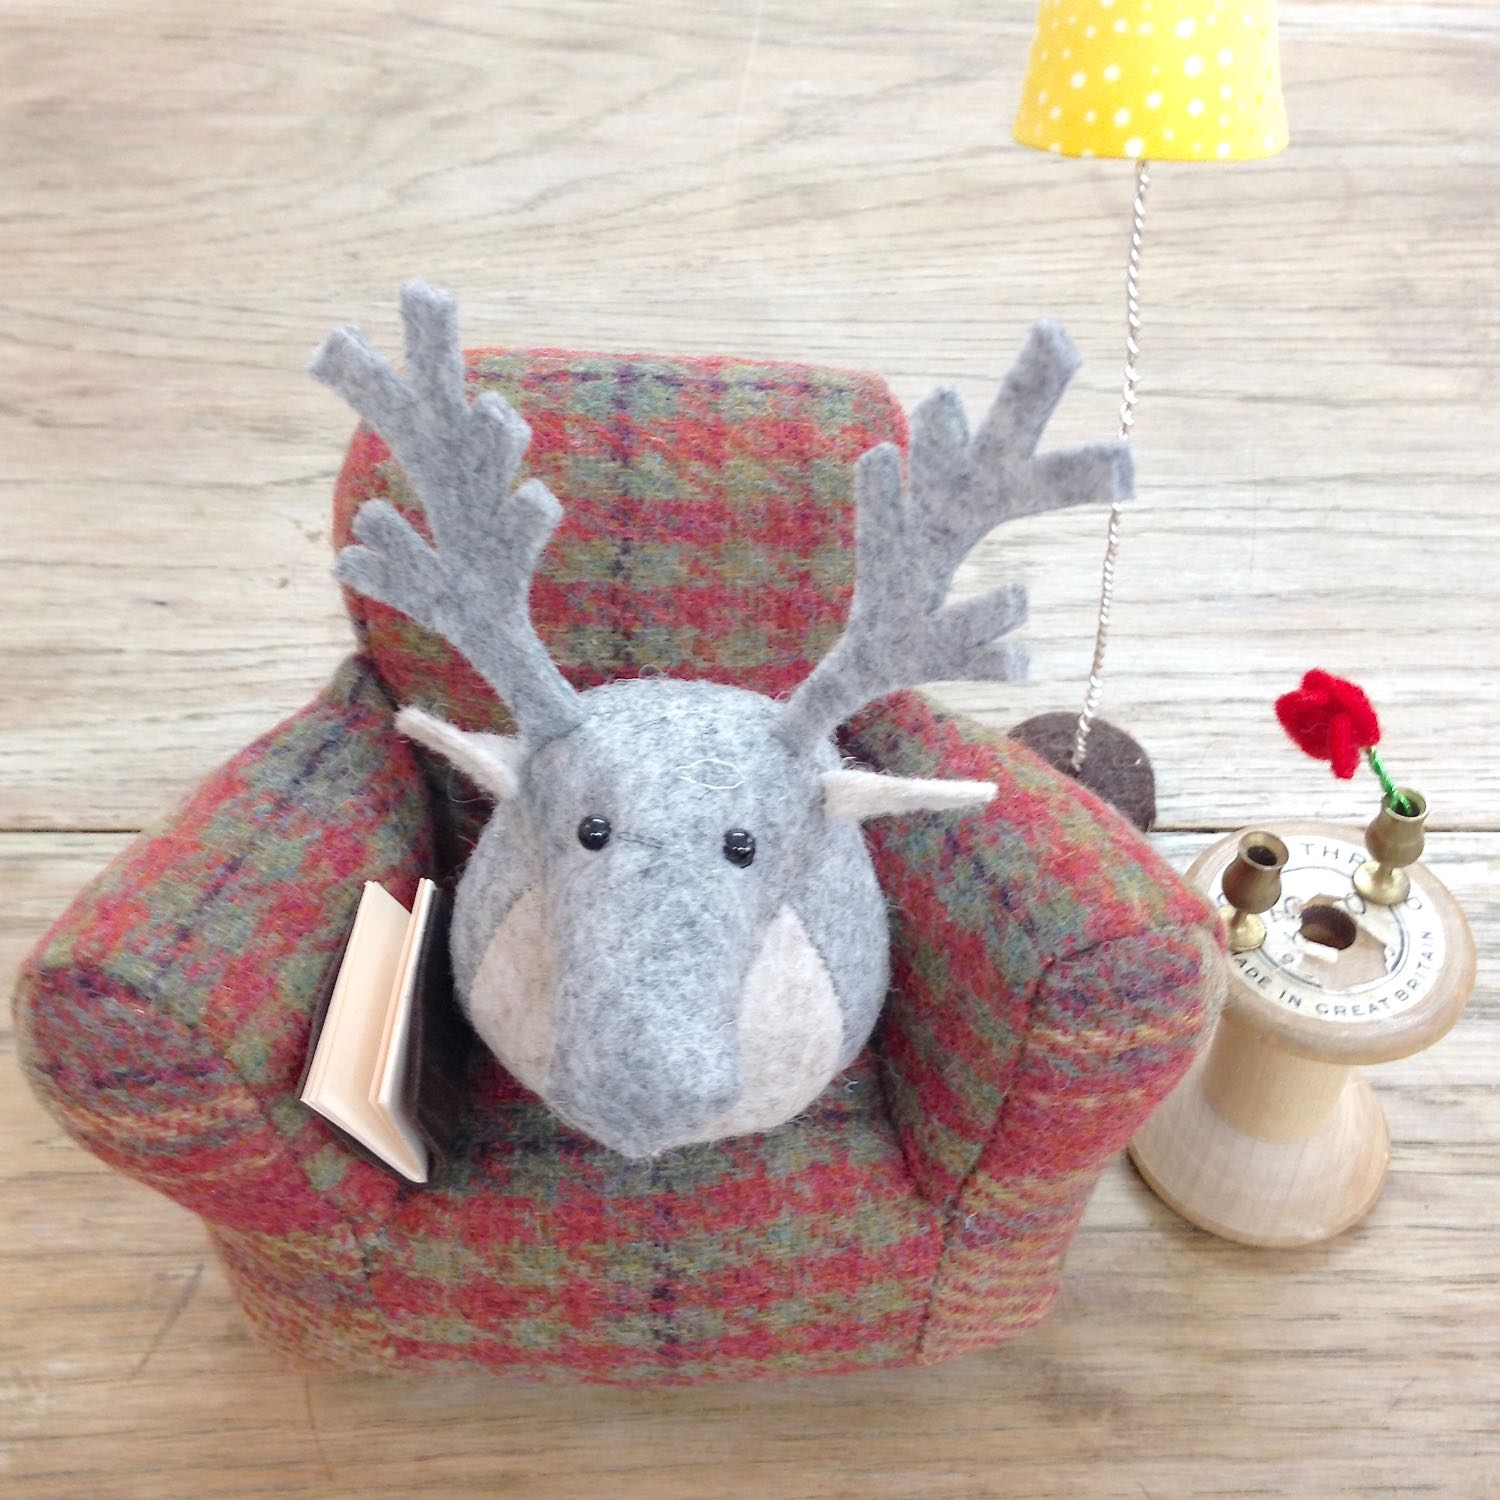 Rupert the Reindeer by Laura Mirjami | Mirjami Design